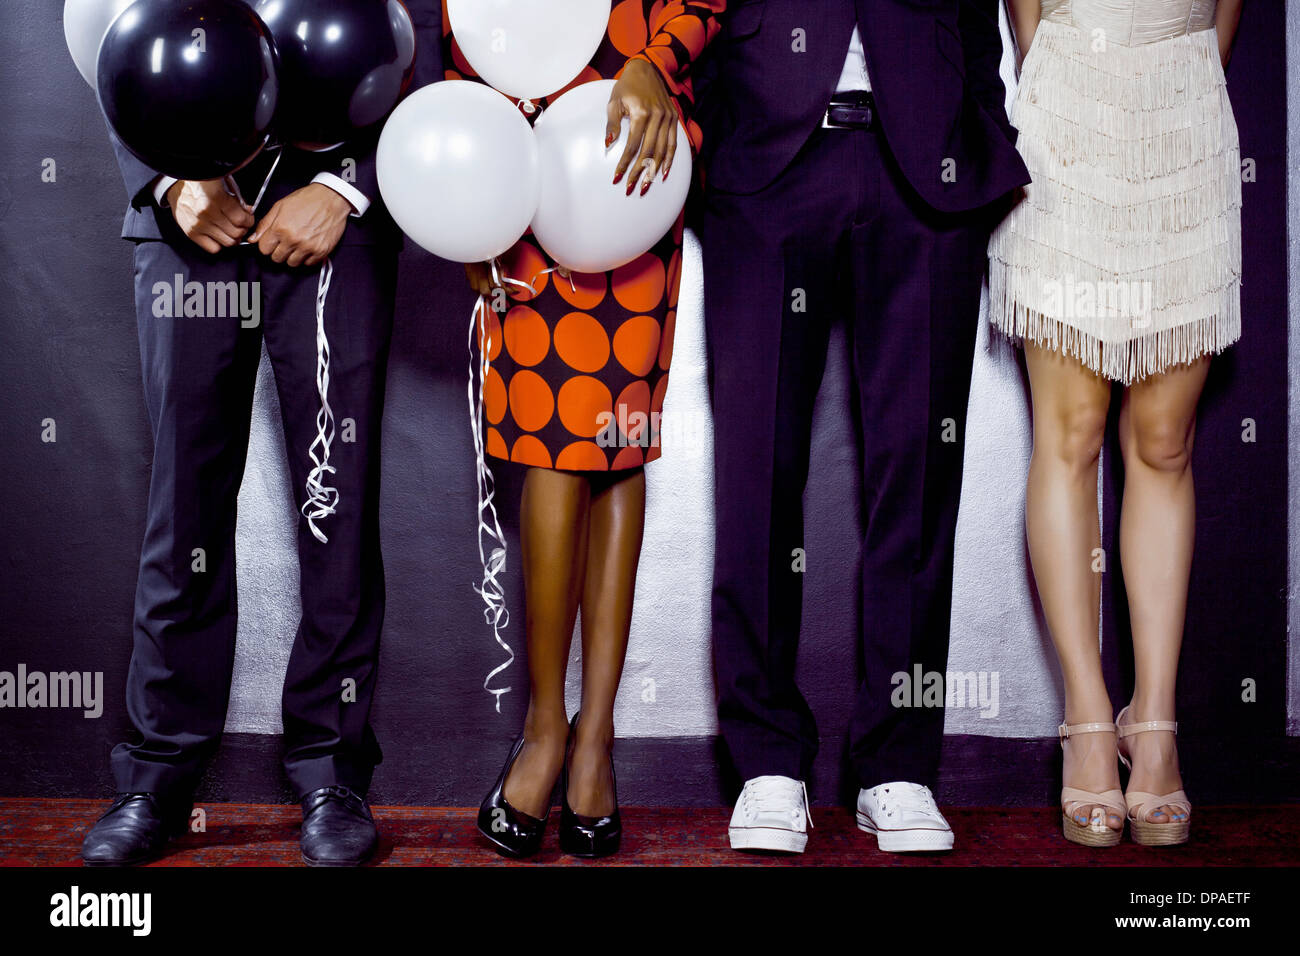 Waist down shot of group of friends with balloons Stock Photo